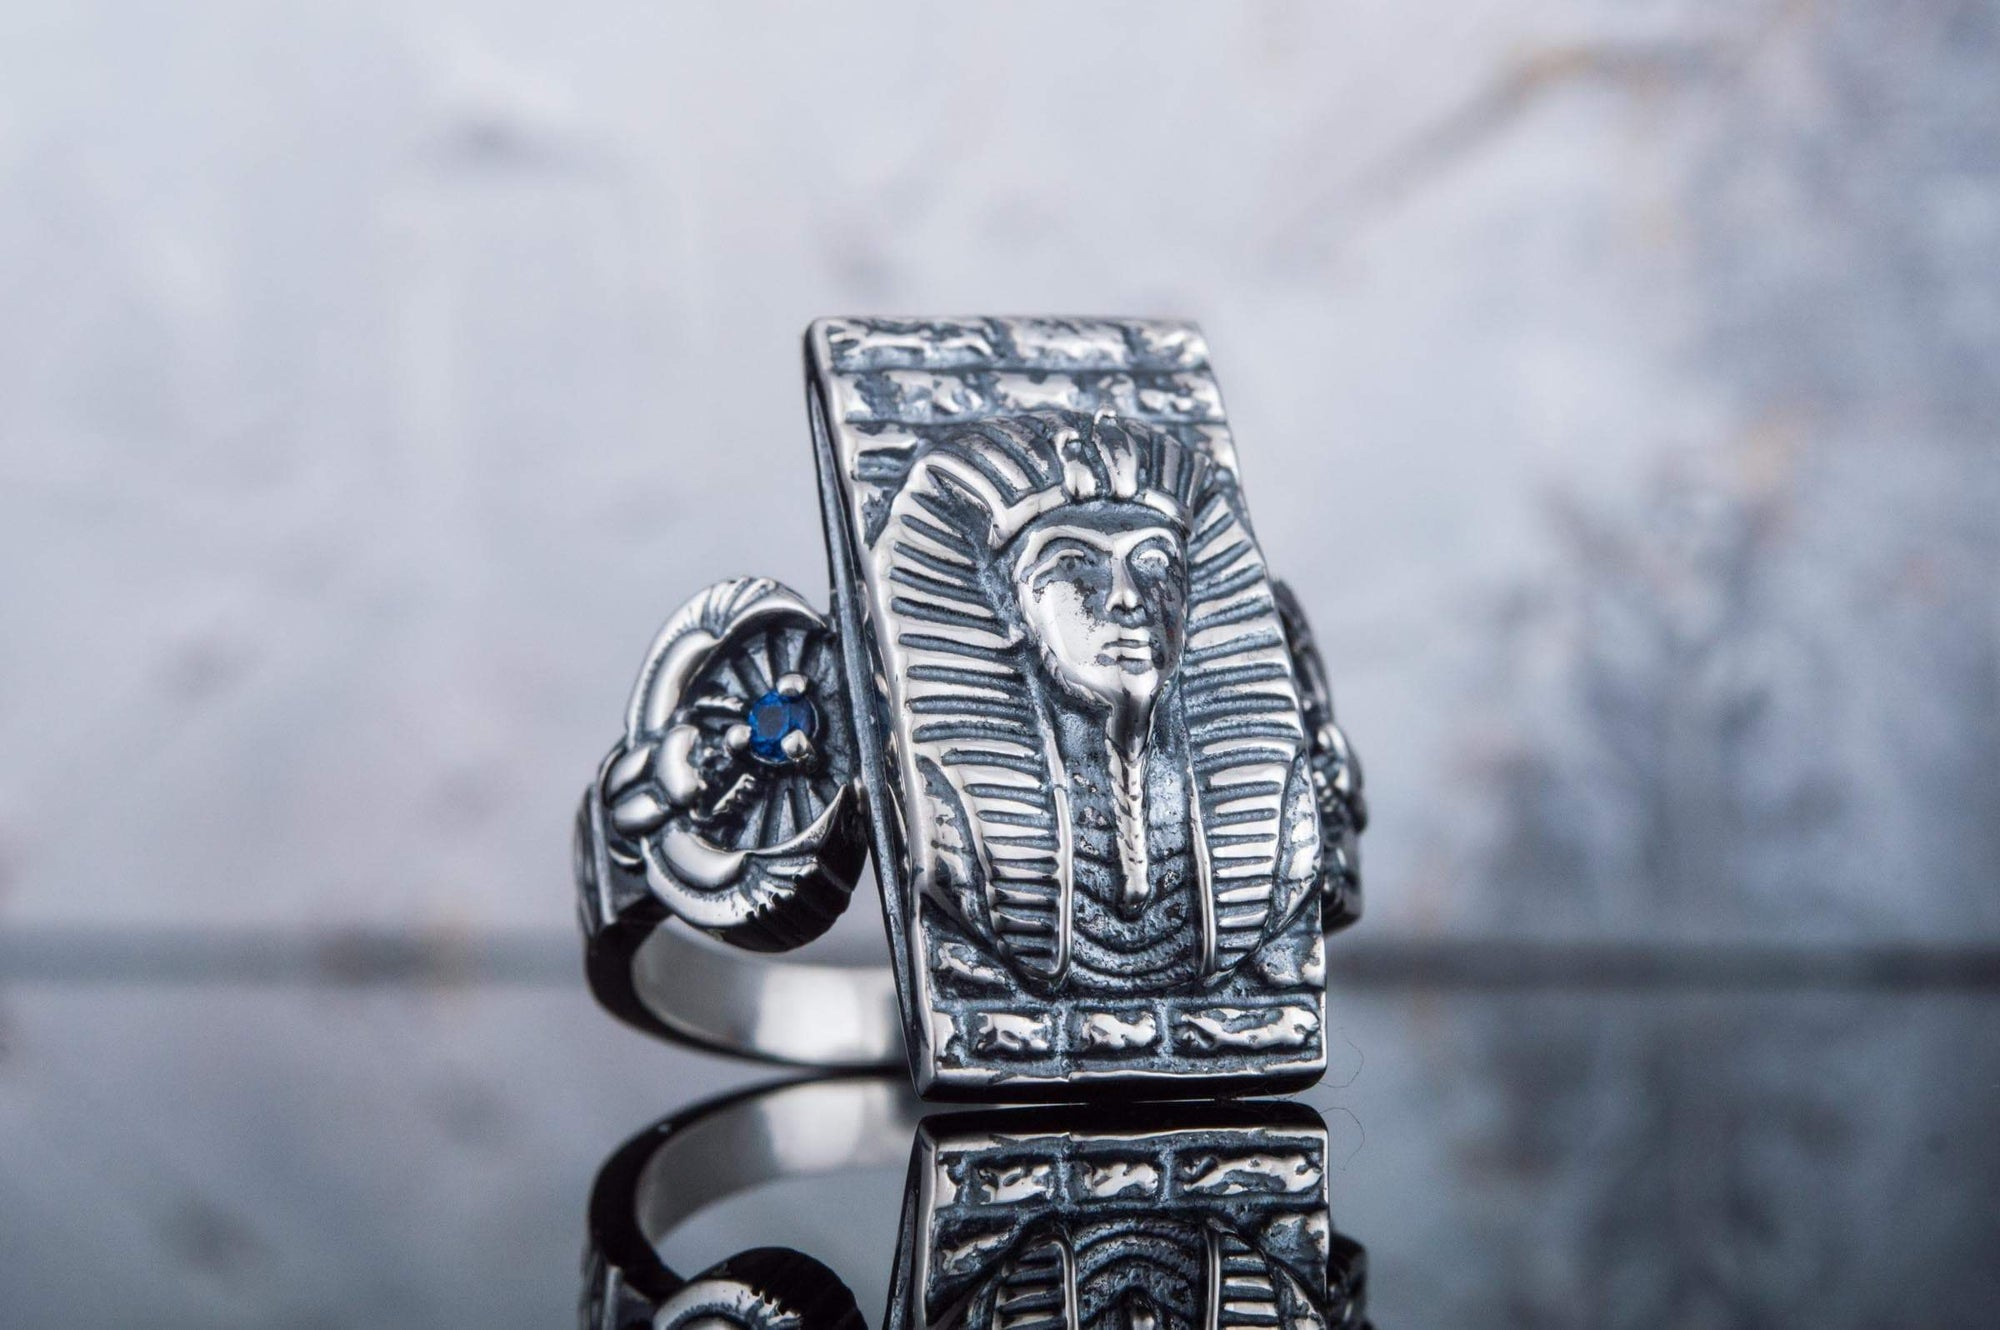 Rings Ancient Egypt Sterling Silver Ring with Pharaoh Tutankhamun Ancient Treasures Ancientreasures Viking Odin Thor Mjolnir Celtic Ancient Egypt Norse Norse Mythology